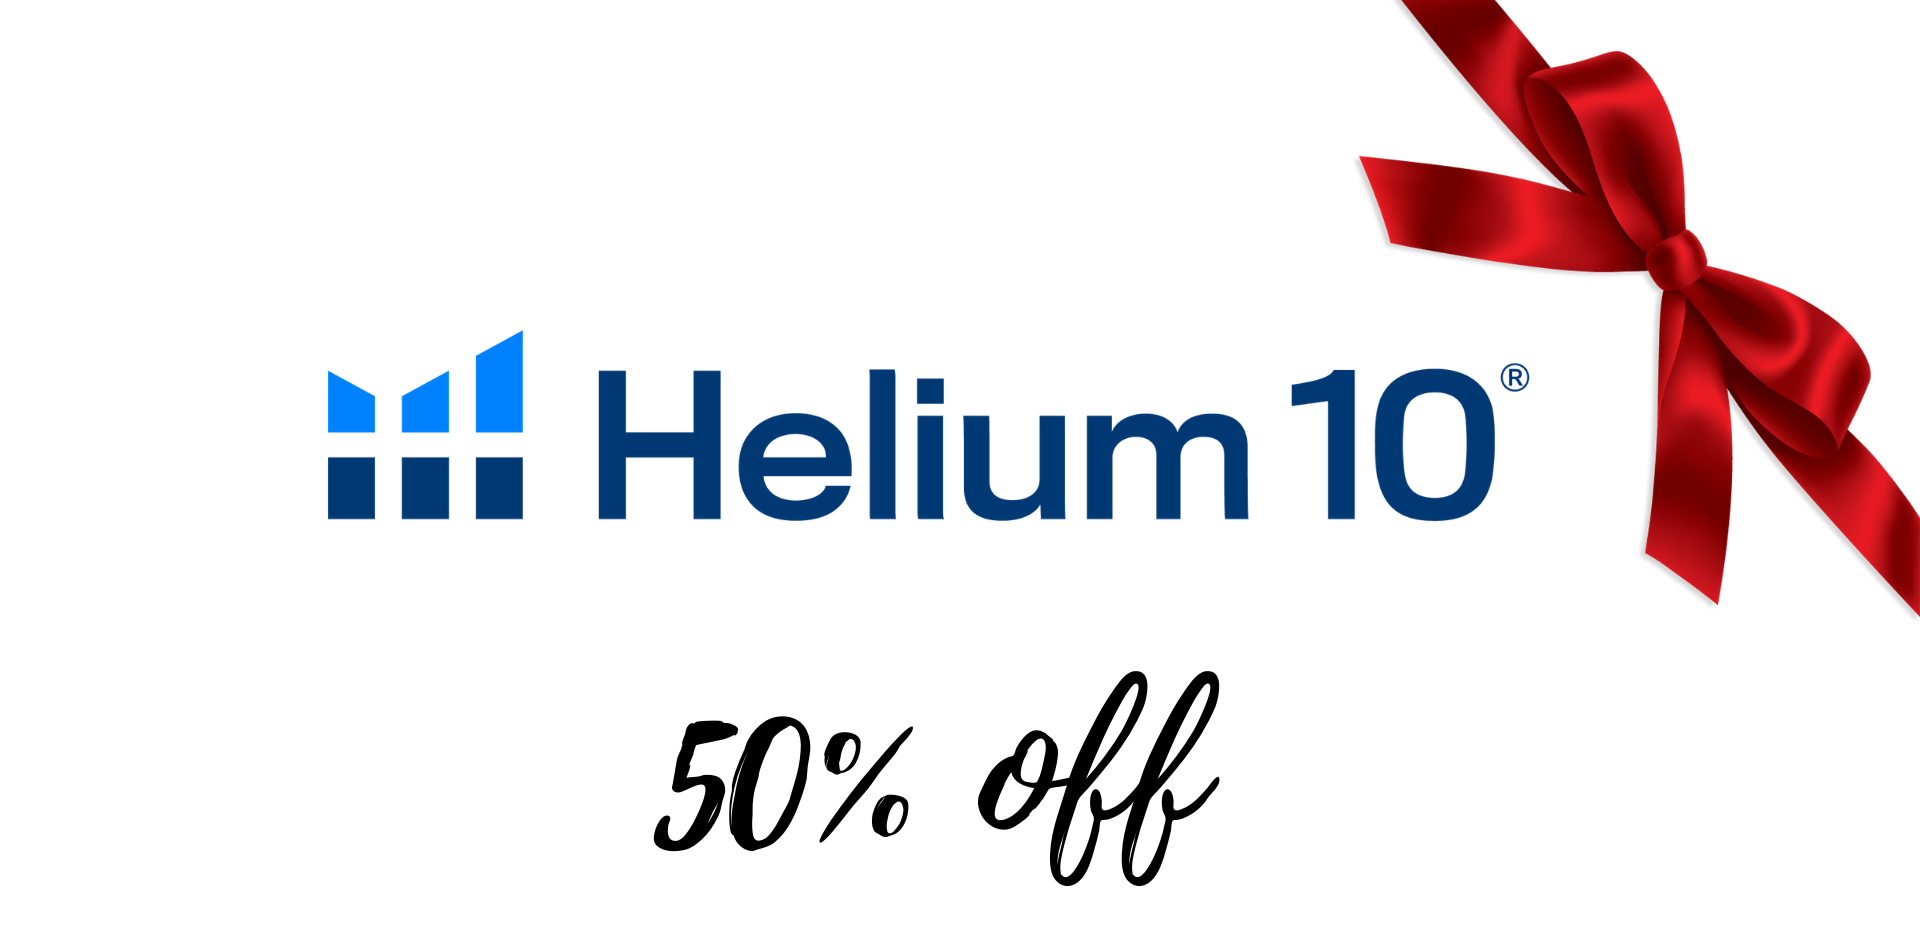 Helium10 Comapny Review